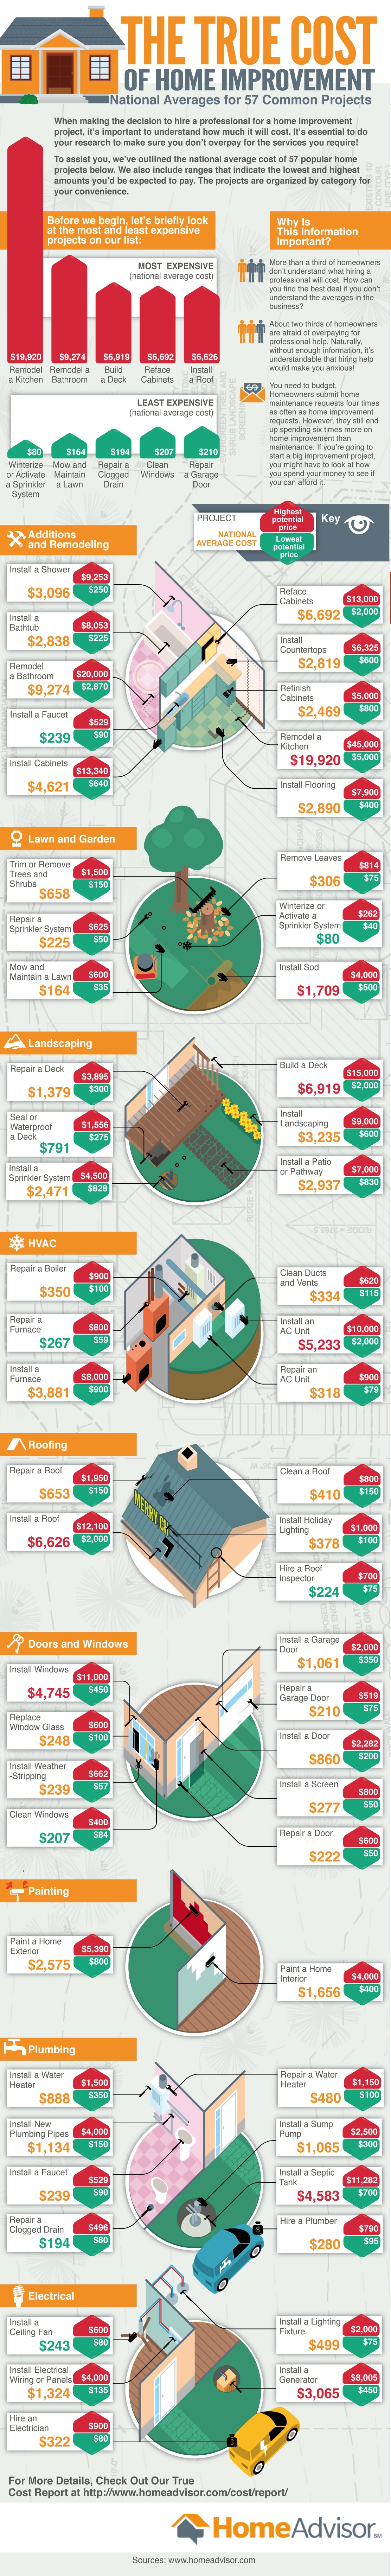 The True Cost of Home Improvement